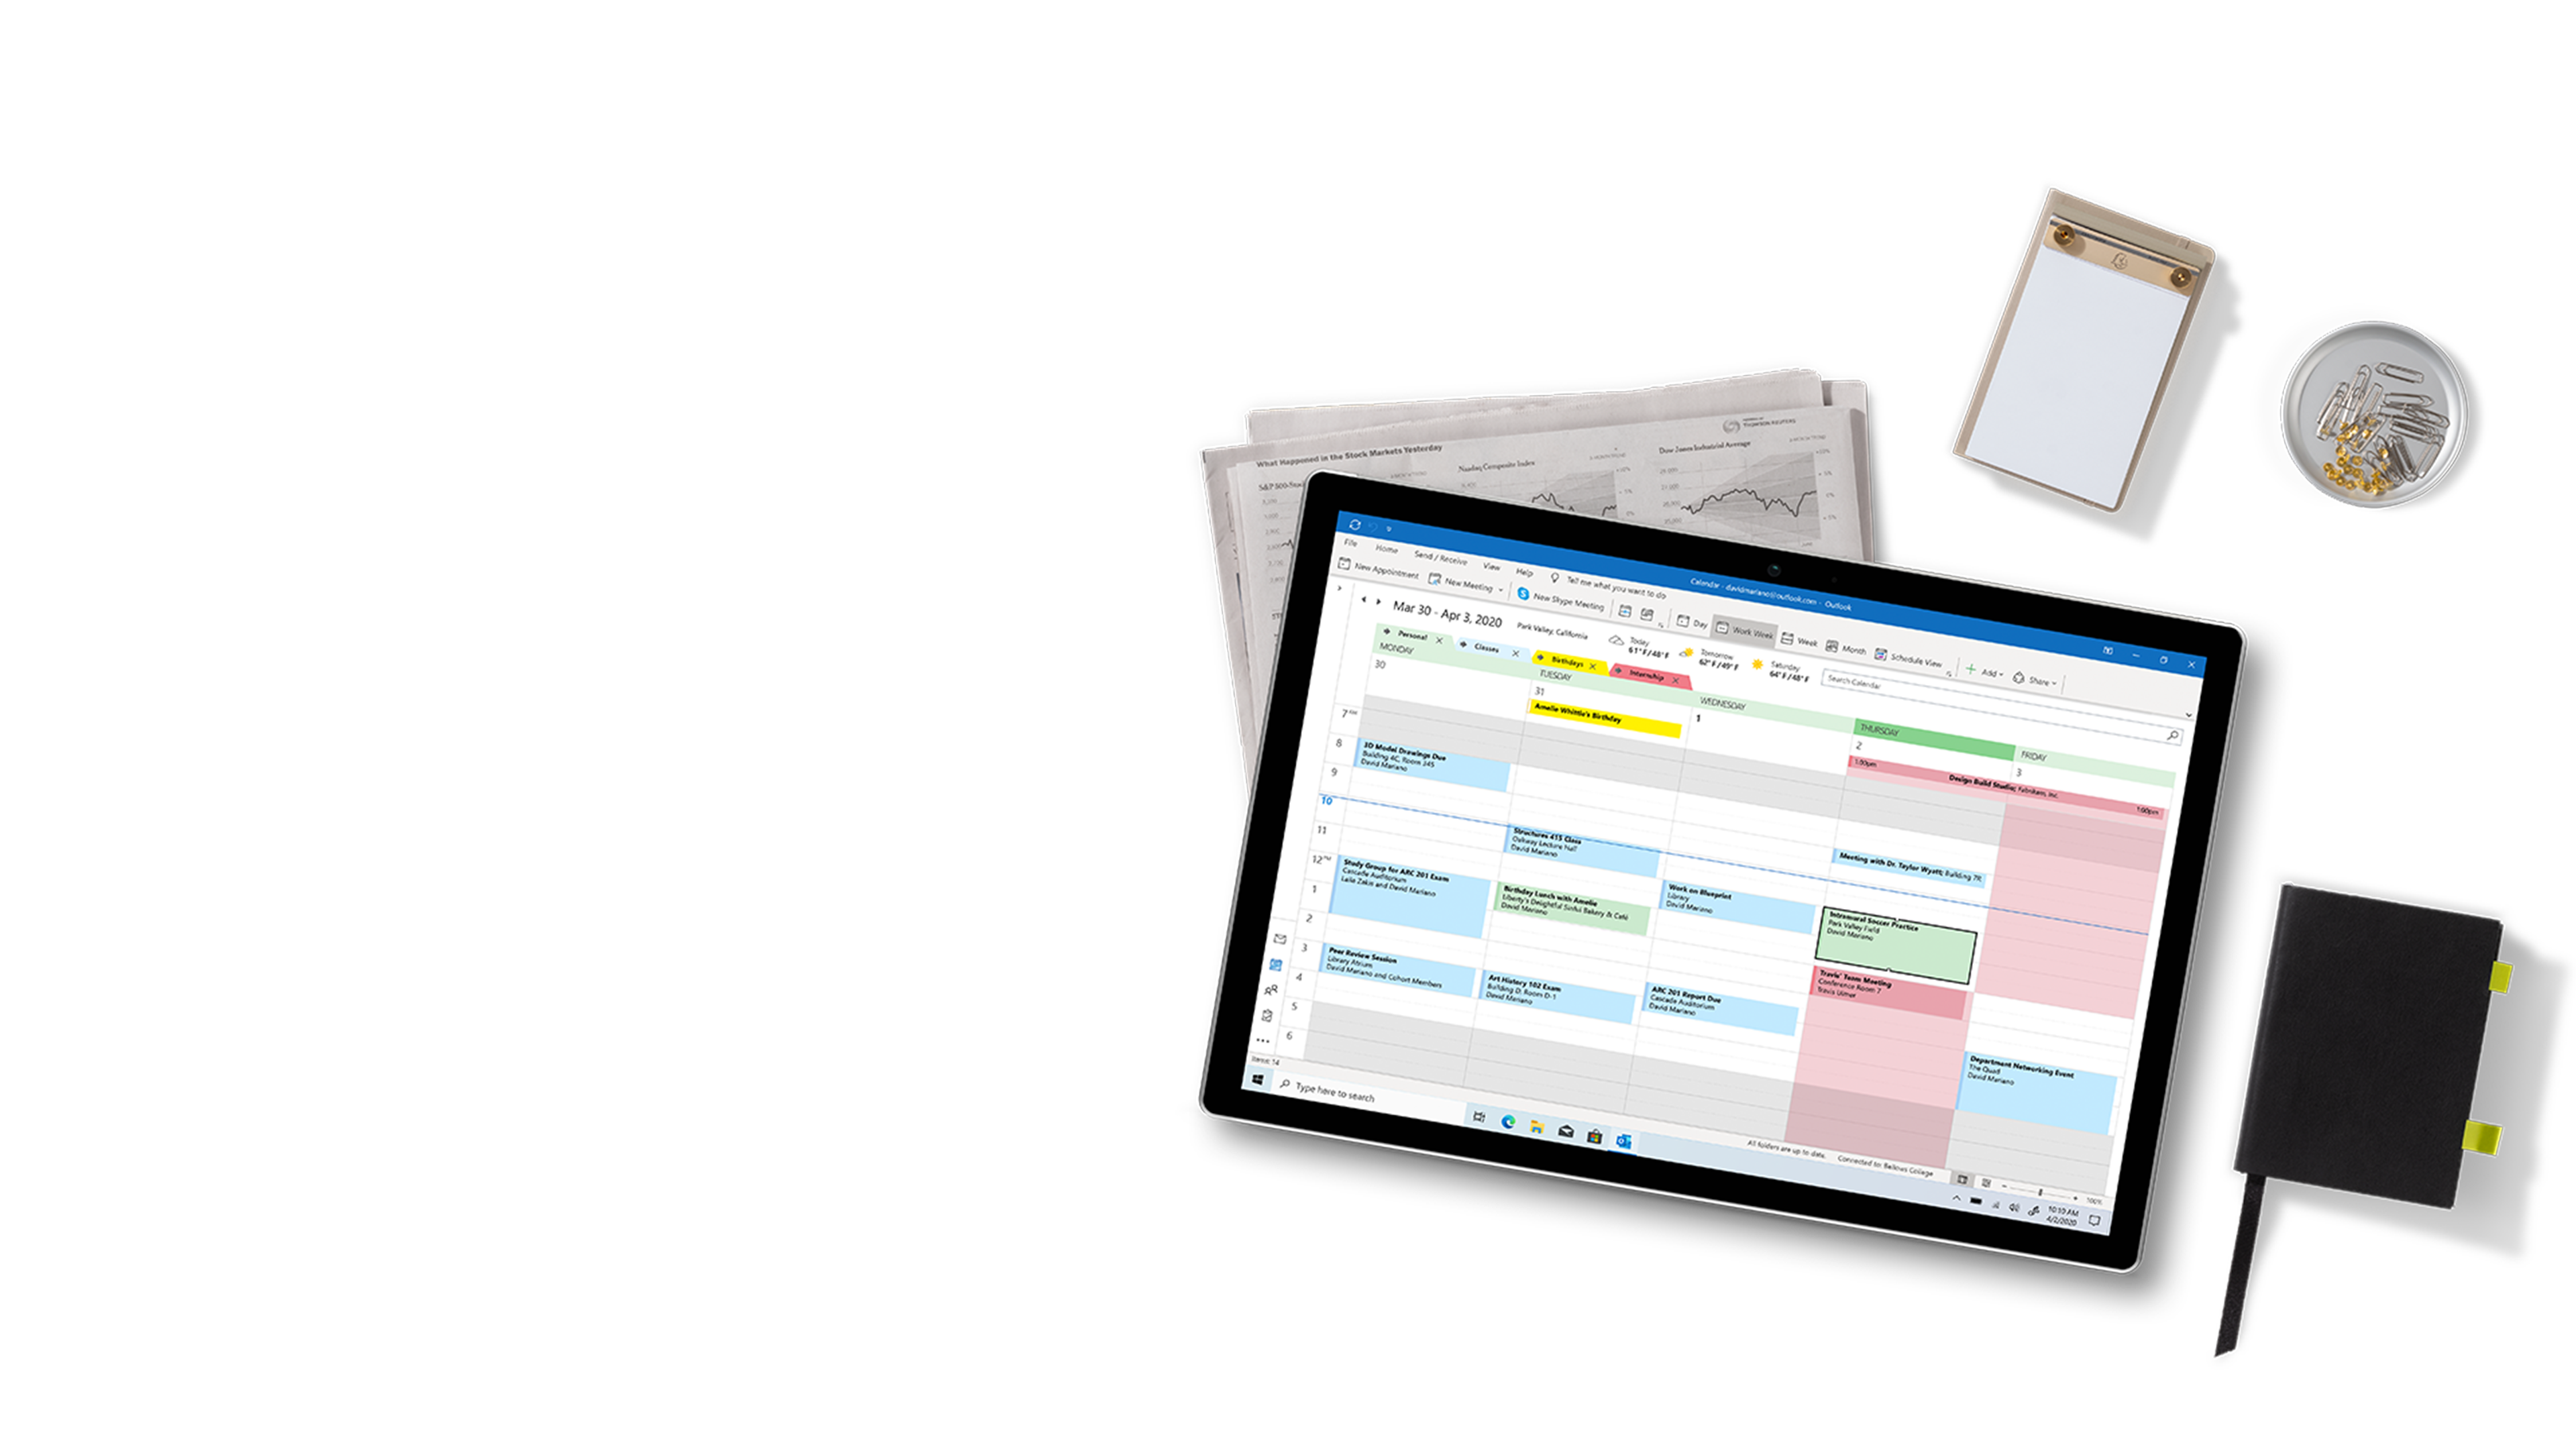 A tablet device displaying calendars in Outlook. The tablet is lying on folded newspaper, a notepad, a dish of fasteners, and a bound notebook.